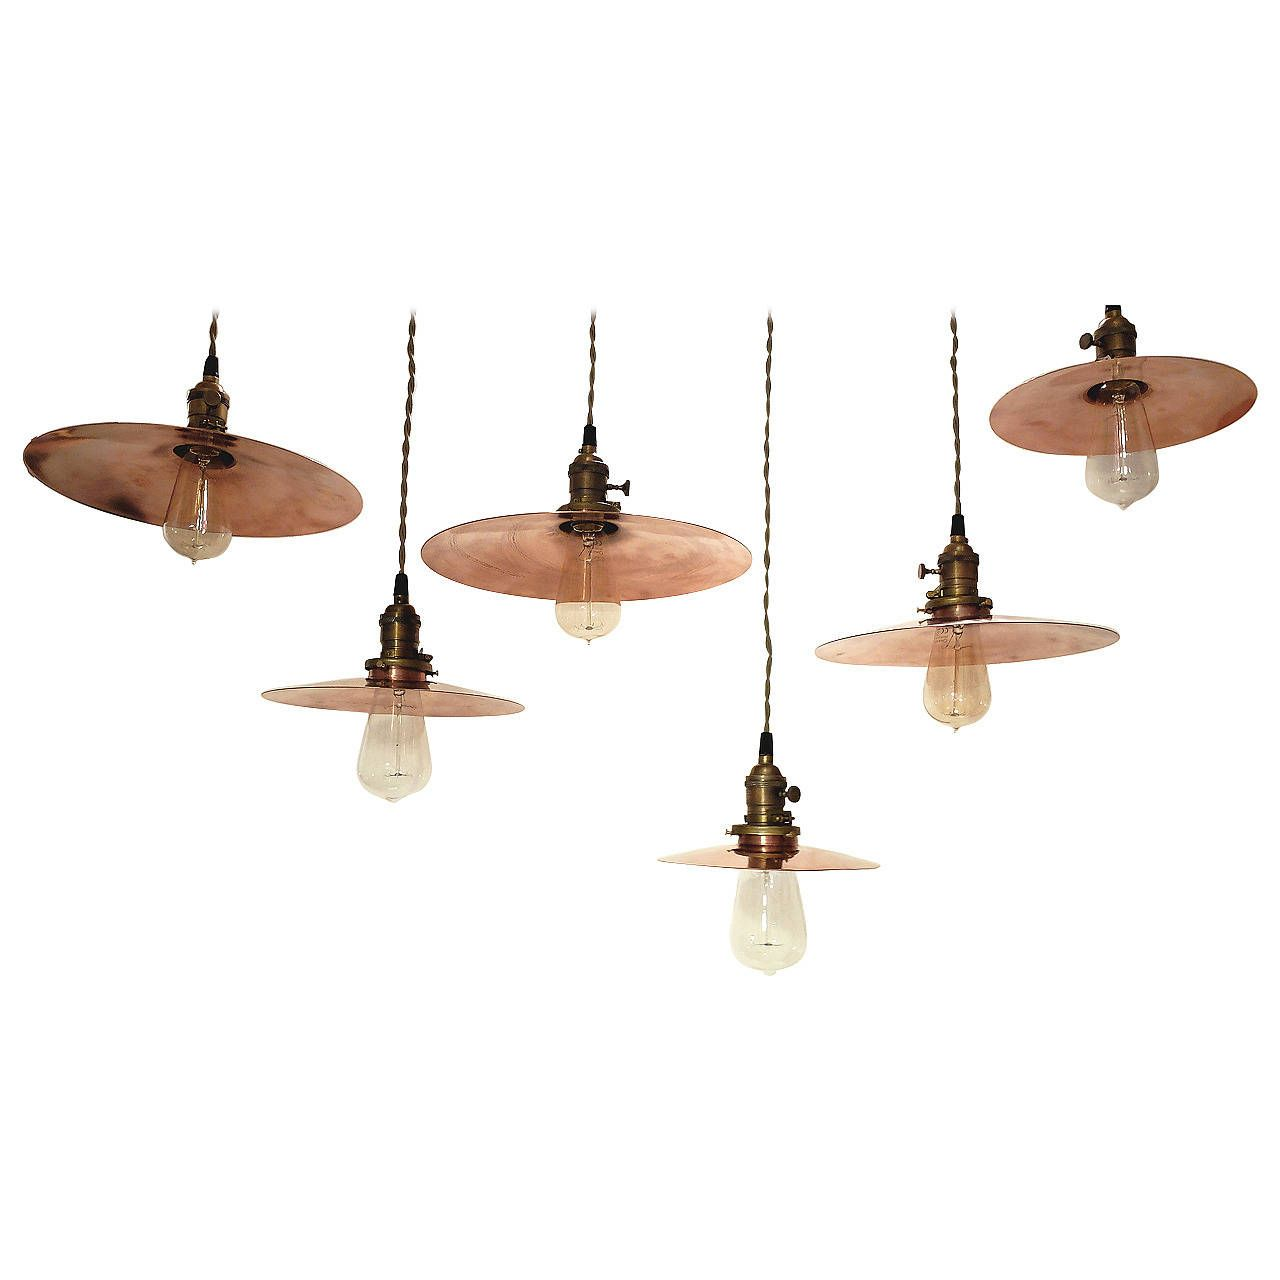 Hanging copper swinging lamps germany 1920s pendant lighting room arubaitofo Choice Image